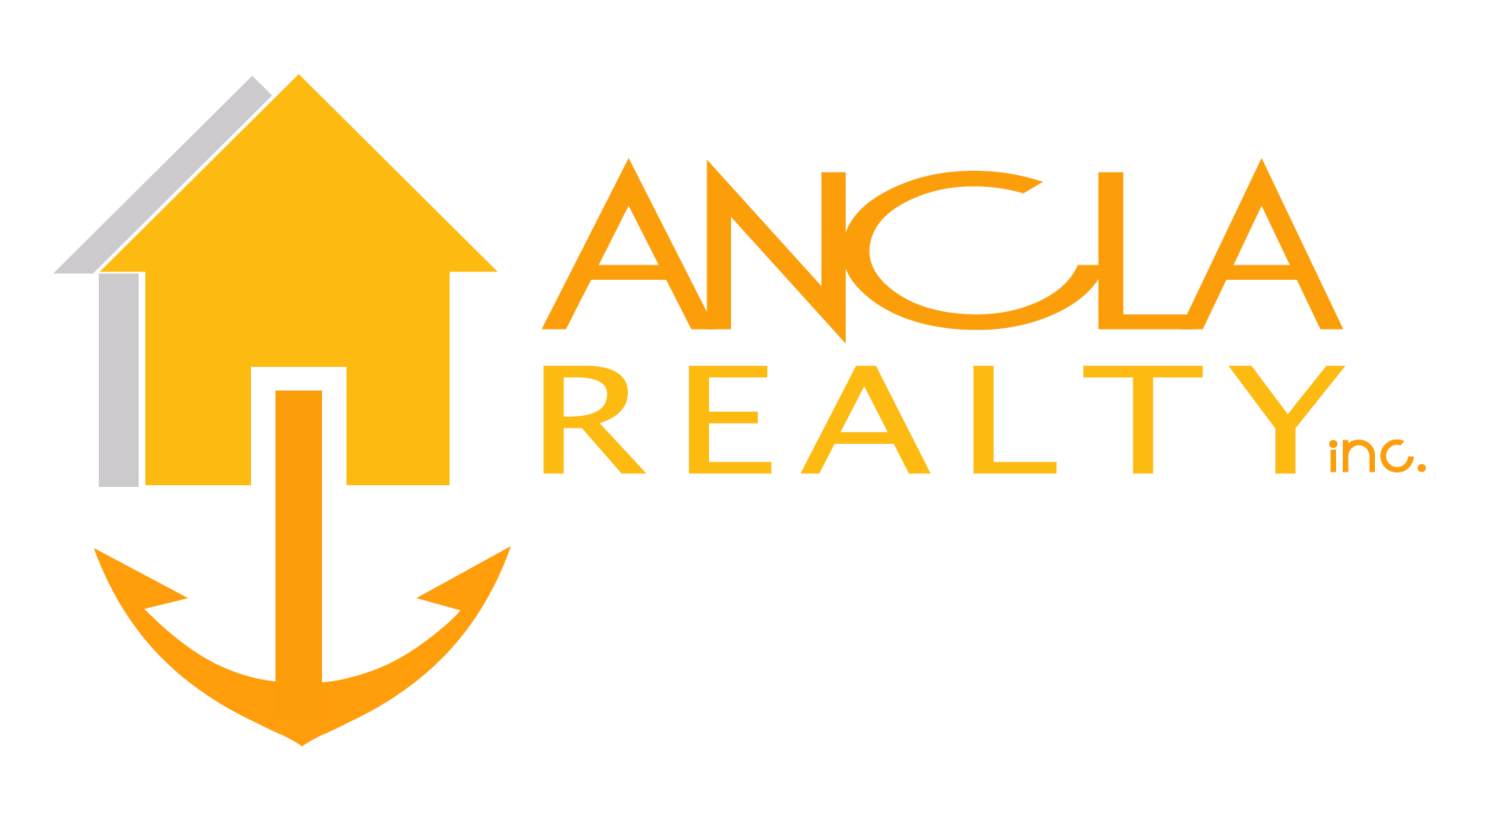 Ancla Realty, Inc. by Carolina Hernandez